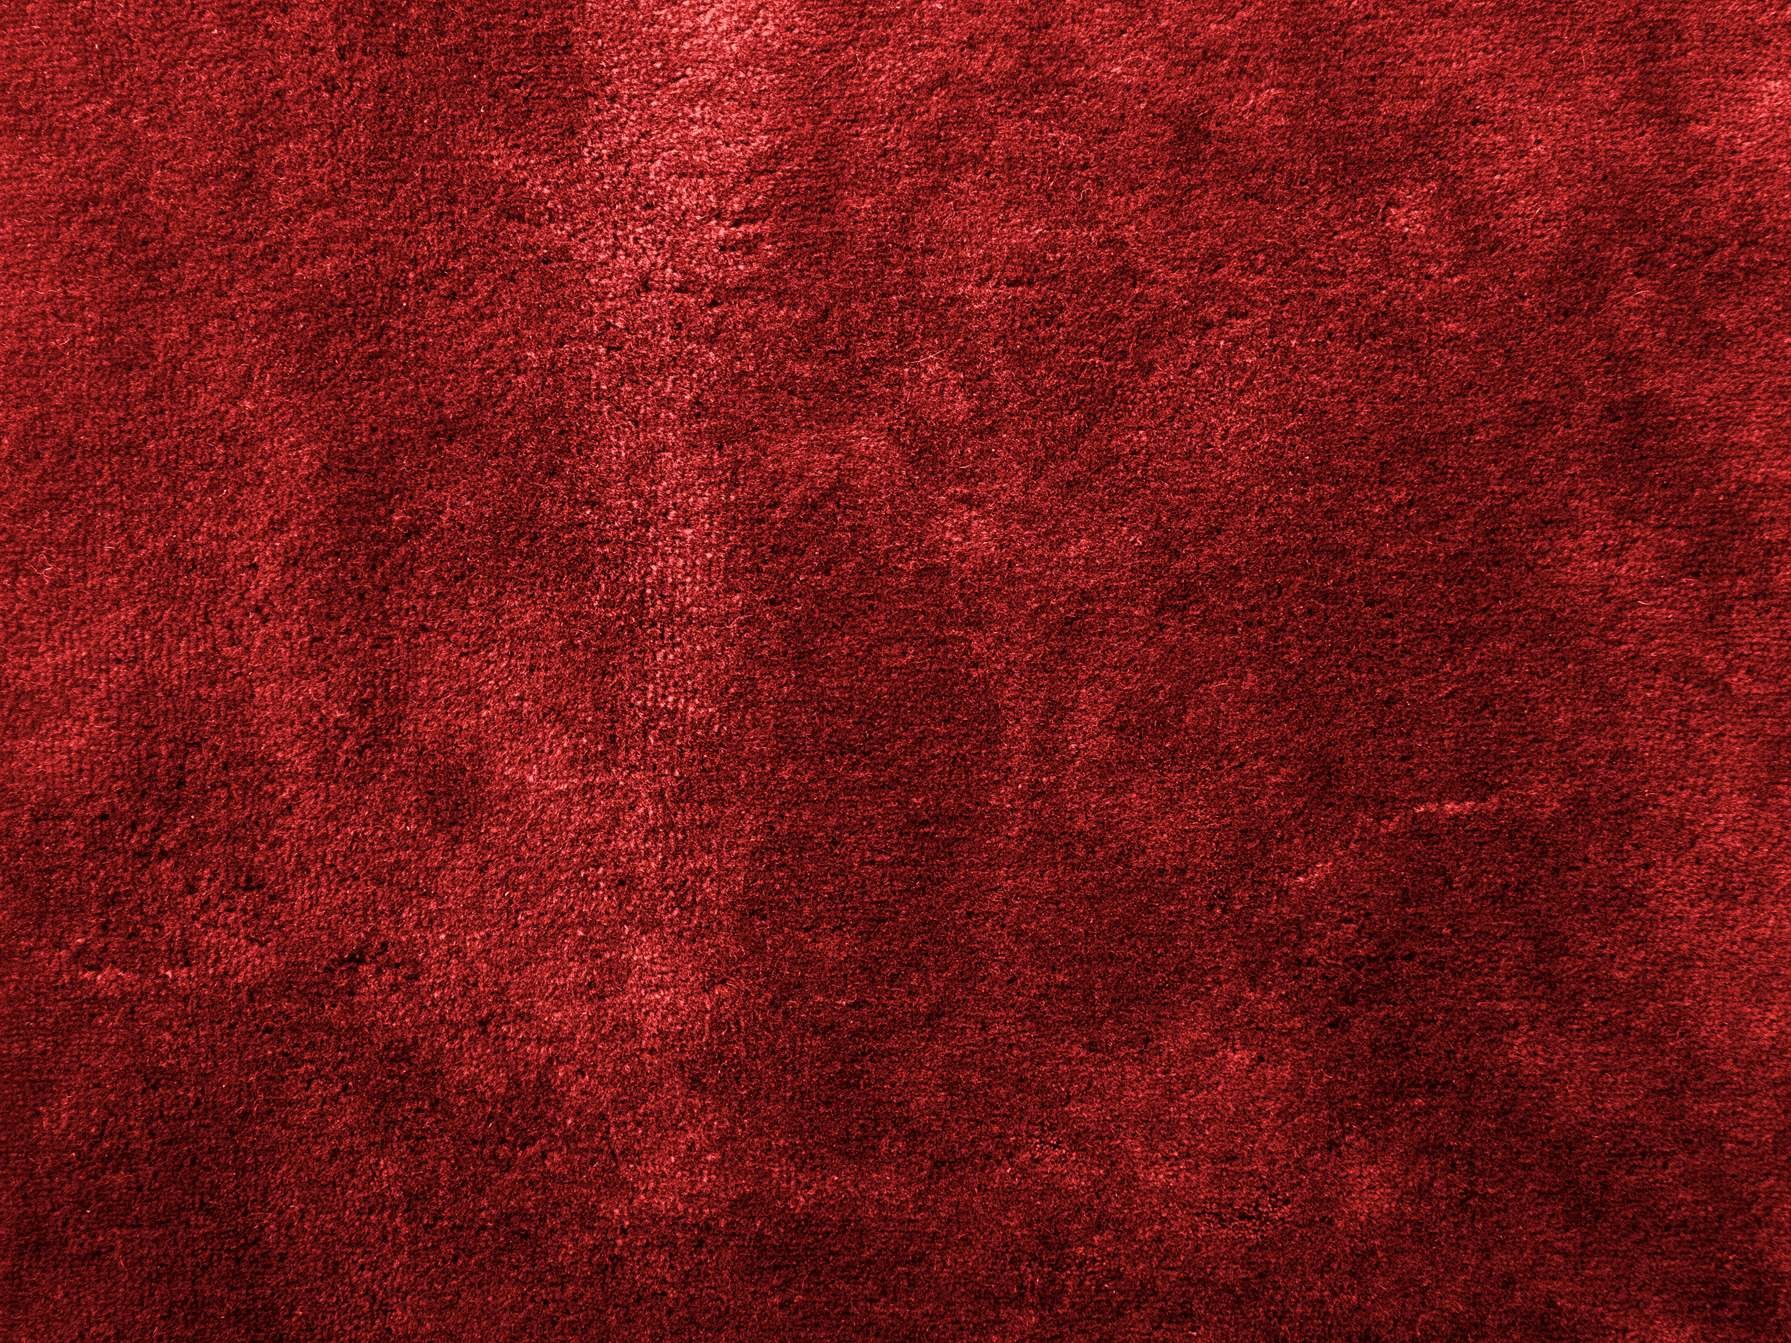 red velvet texture background photohdx red velvet texture background photohdx